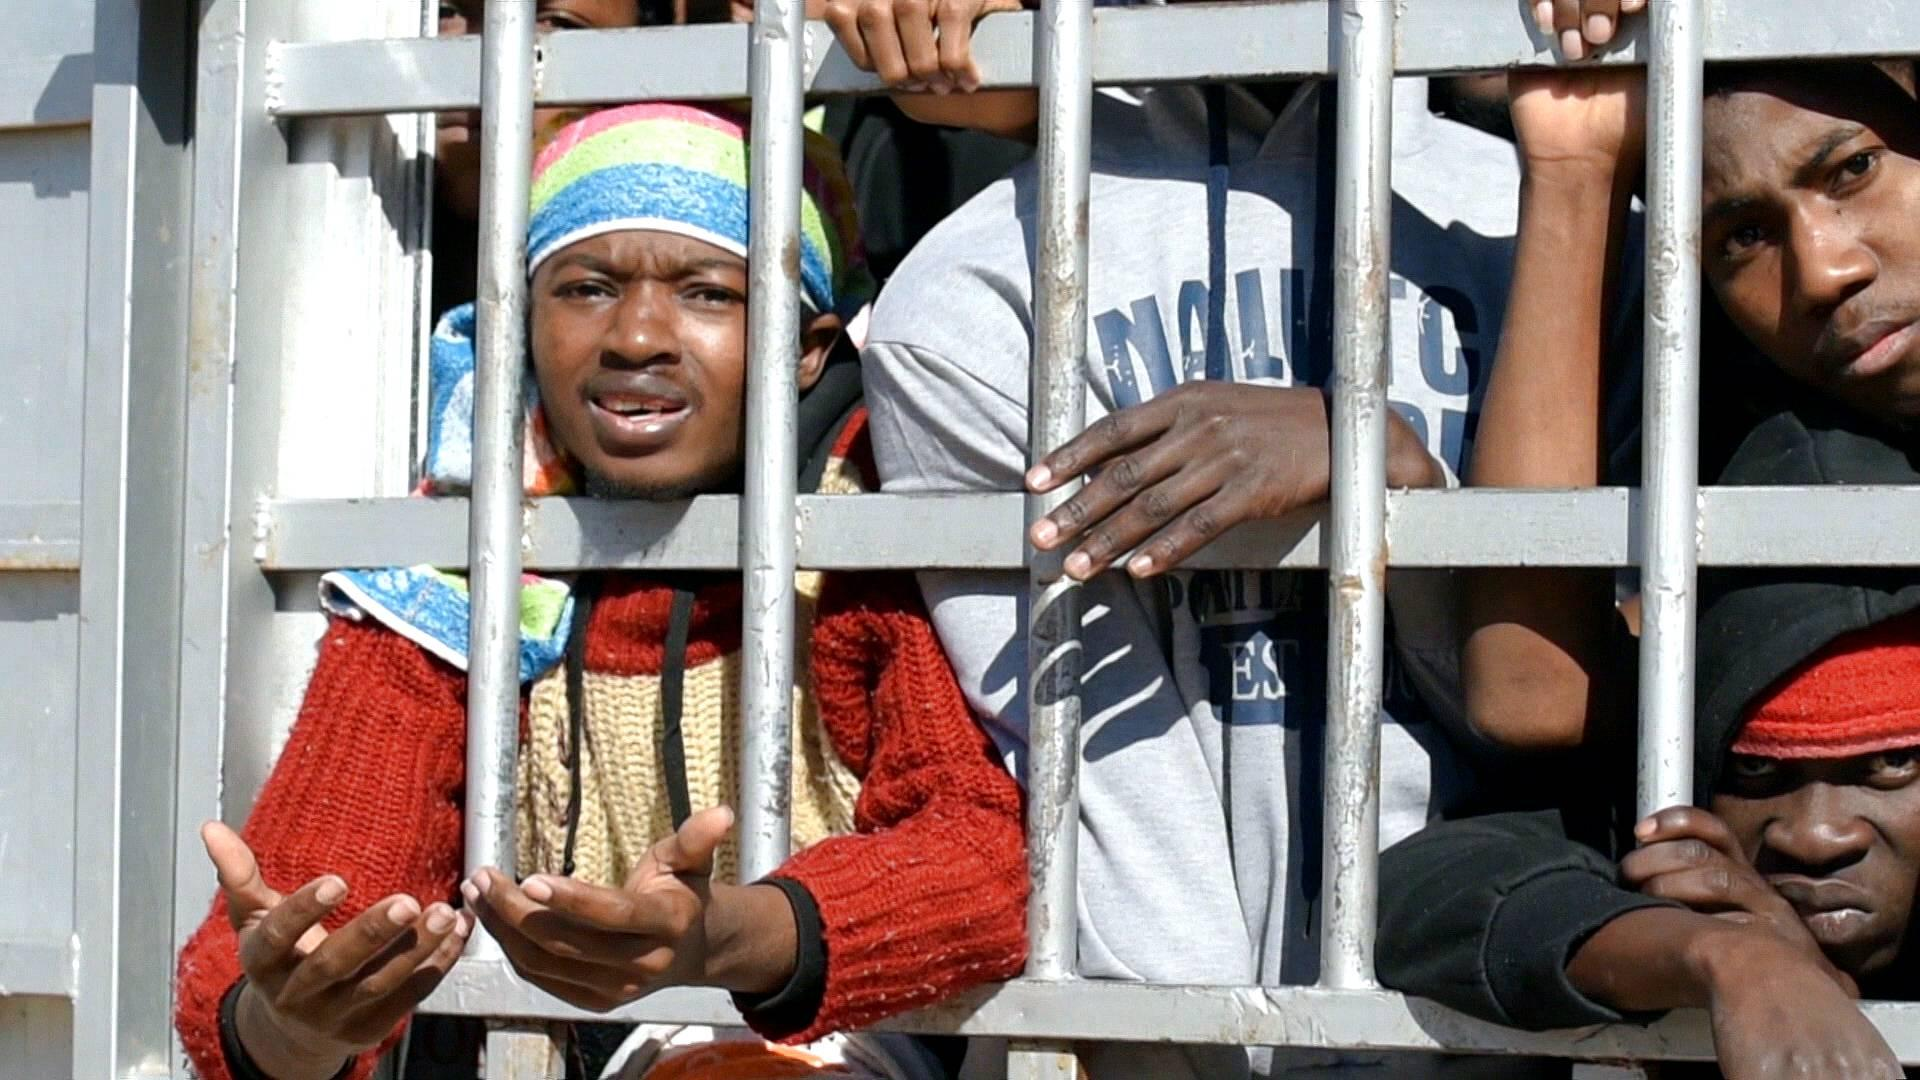 AFRICANS ARE BEING SOLD INTO SLAVERY IN LIBYA AND HOW TO FIGHT IT